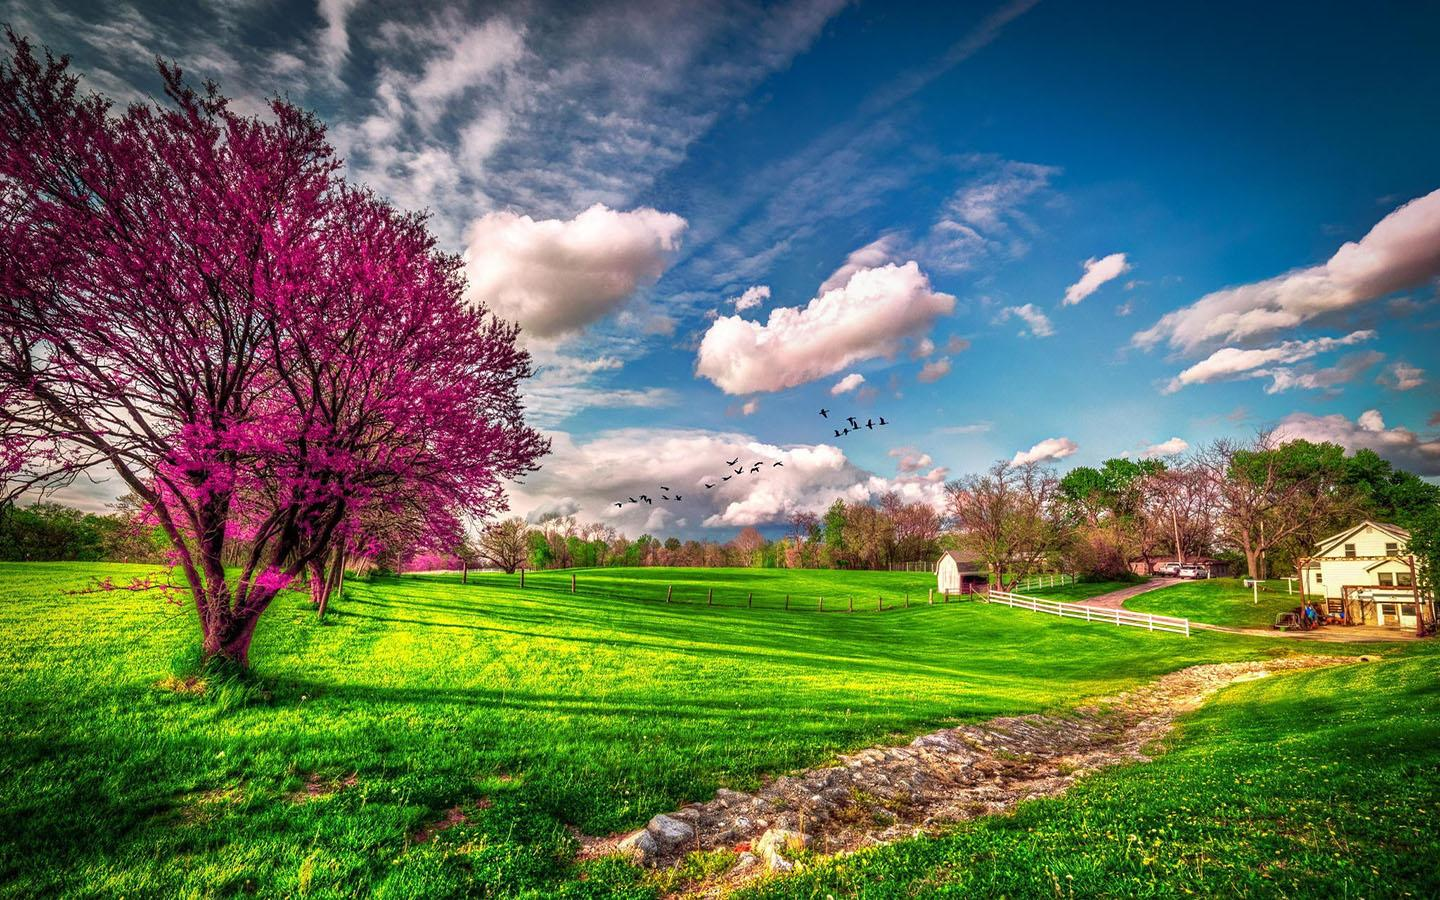 Spring Wallpaper HD Android Apps on Google Play